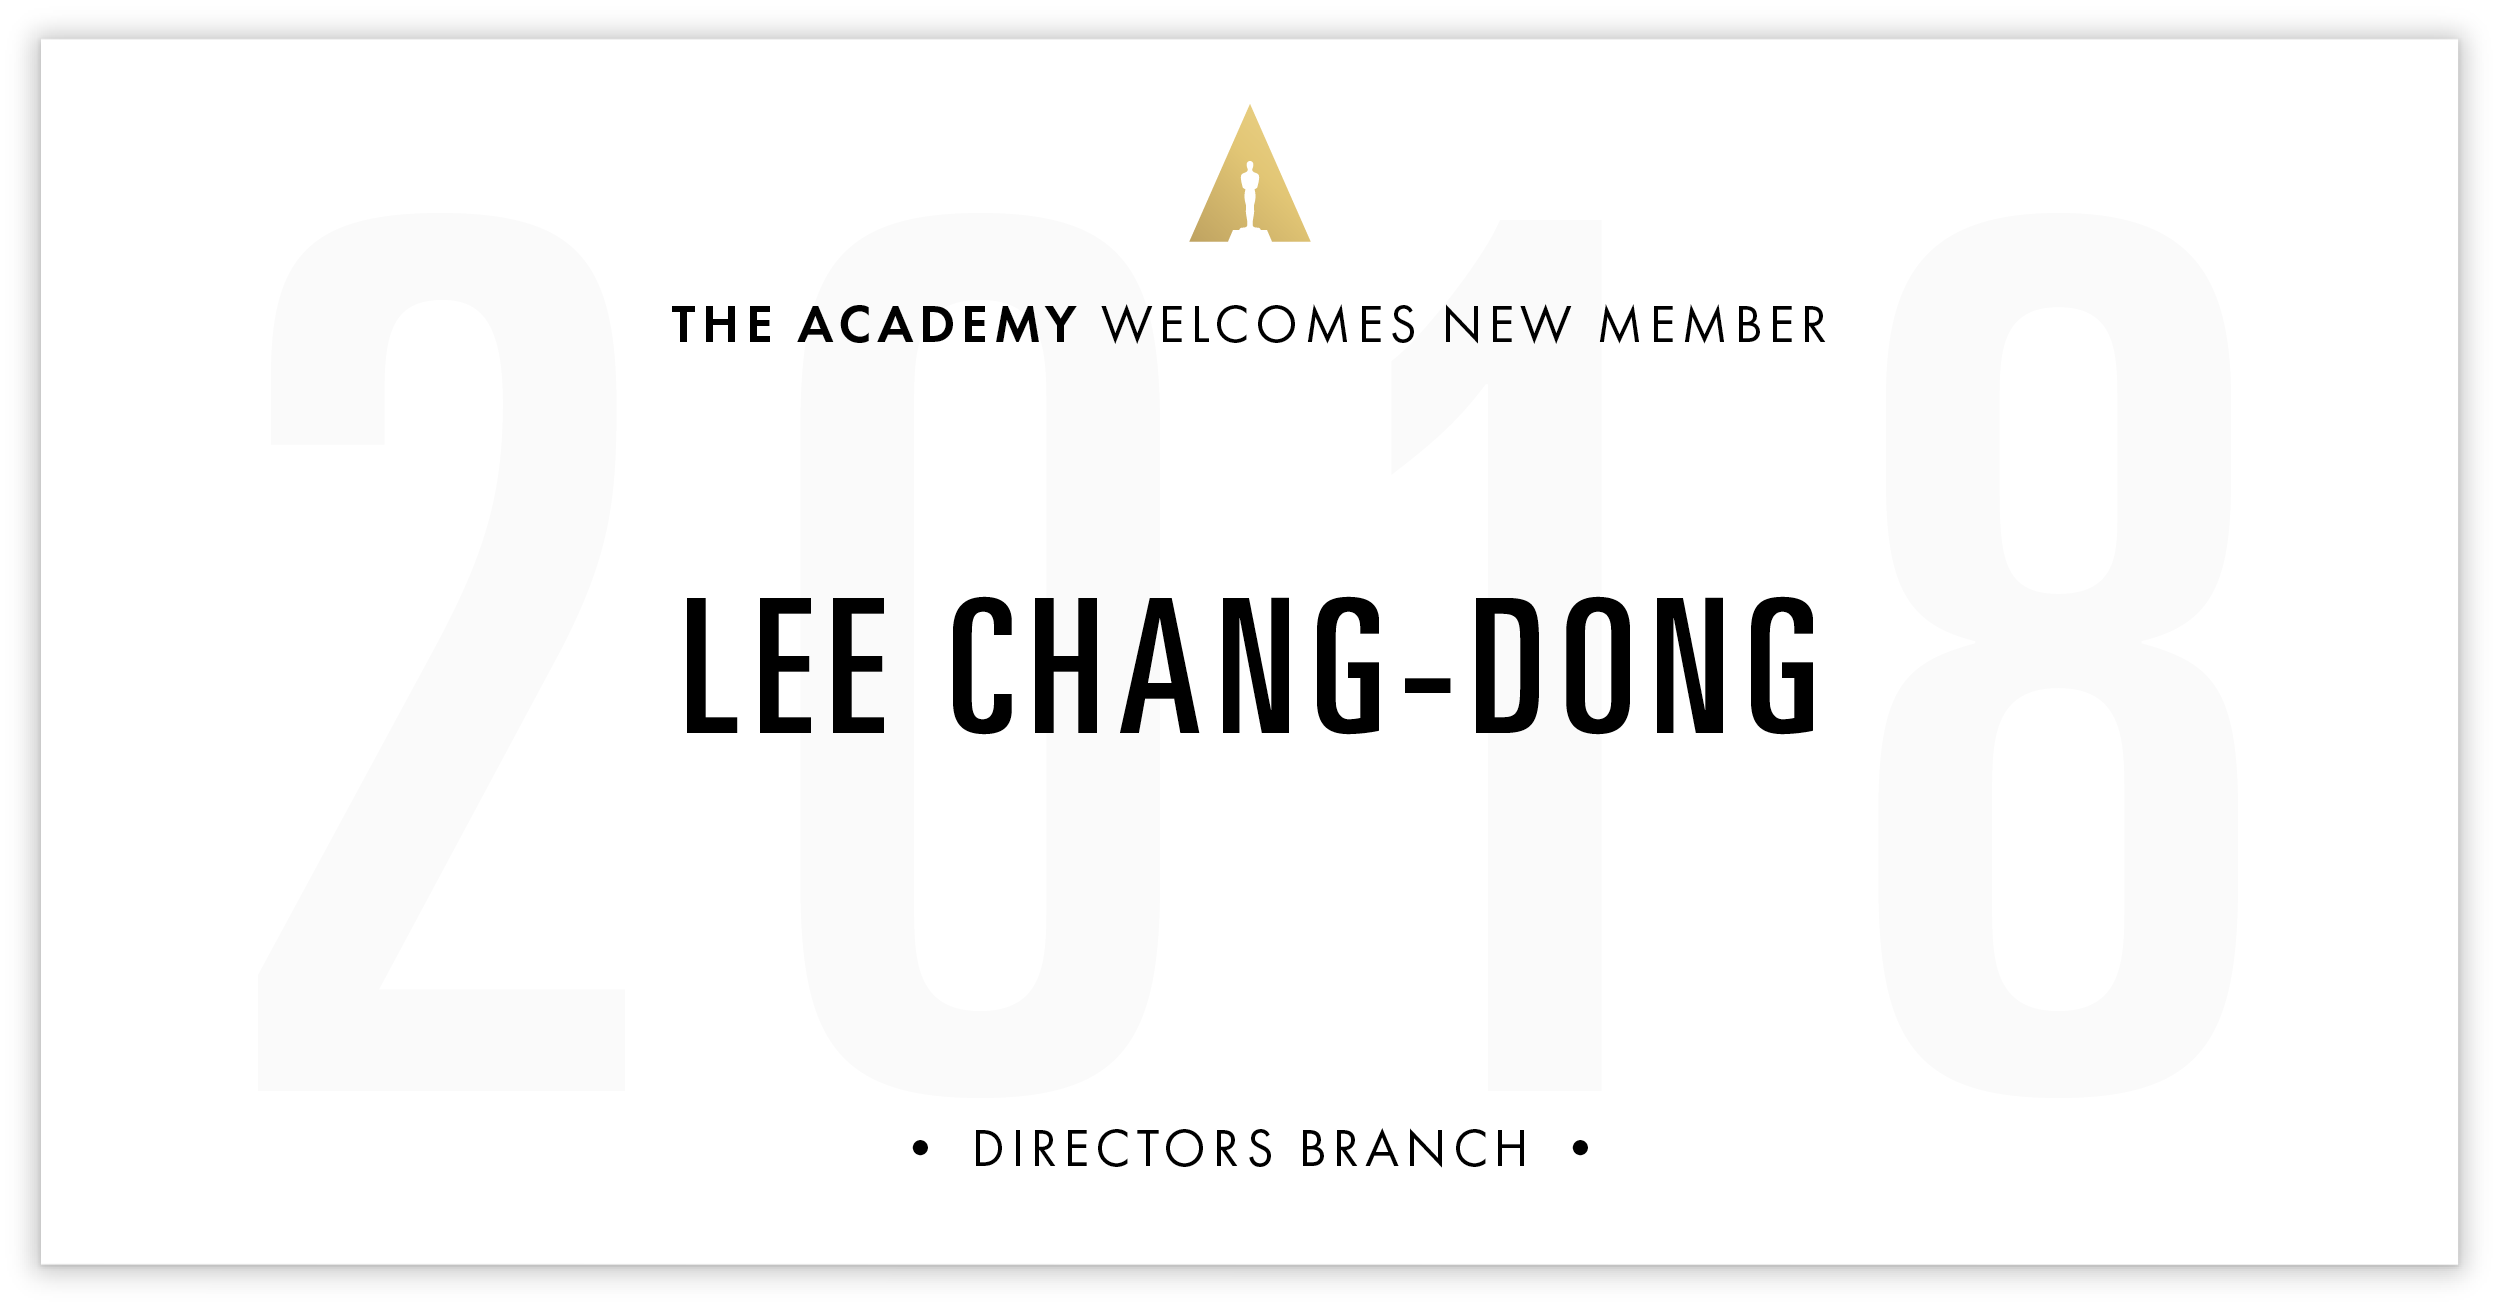 Lee Chang-dong is invited!